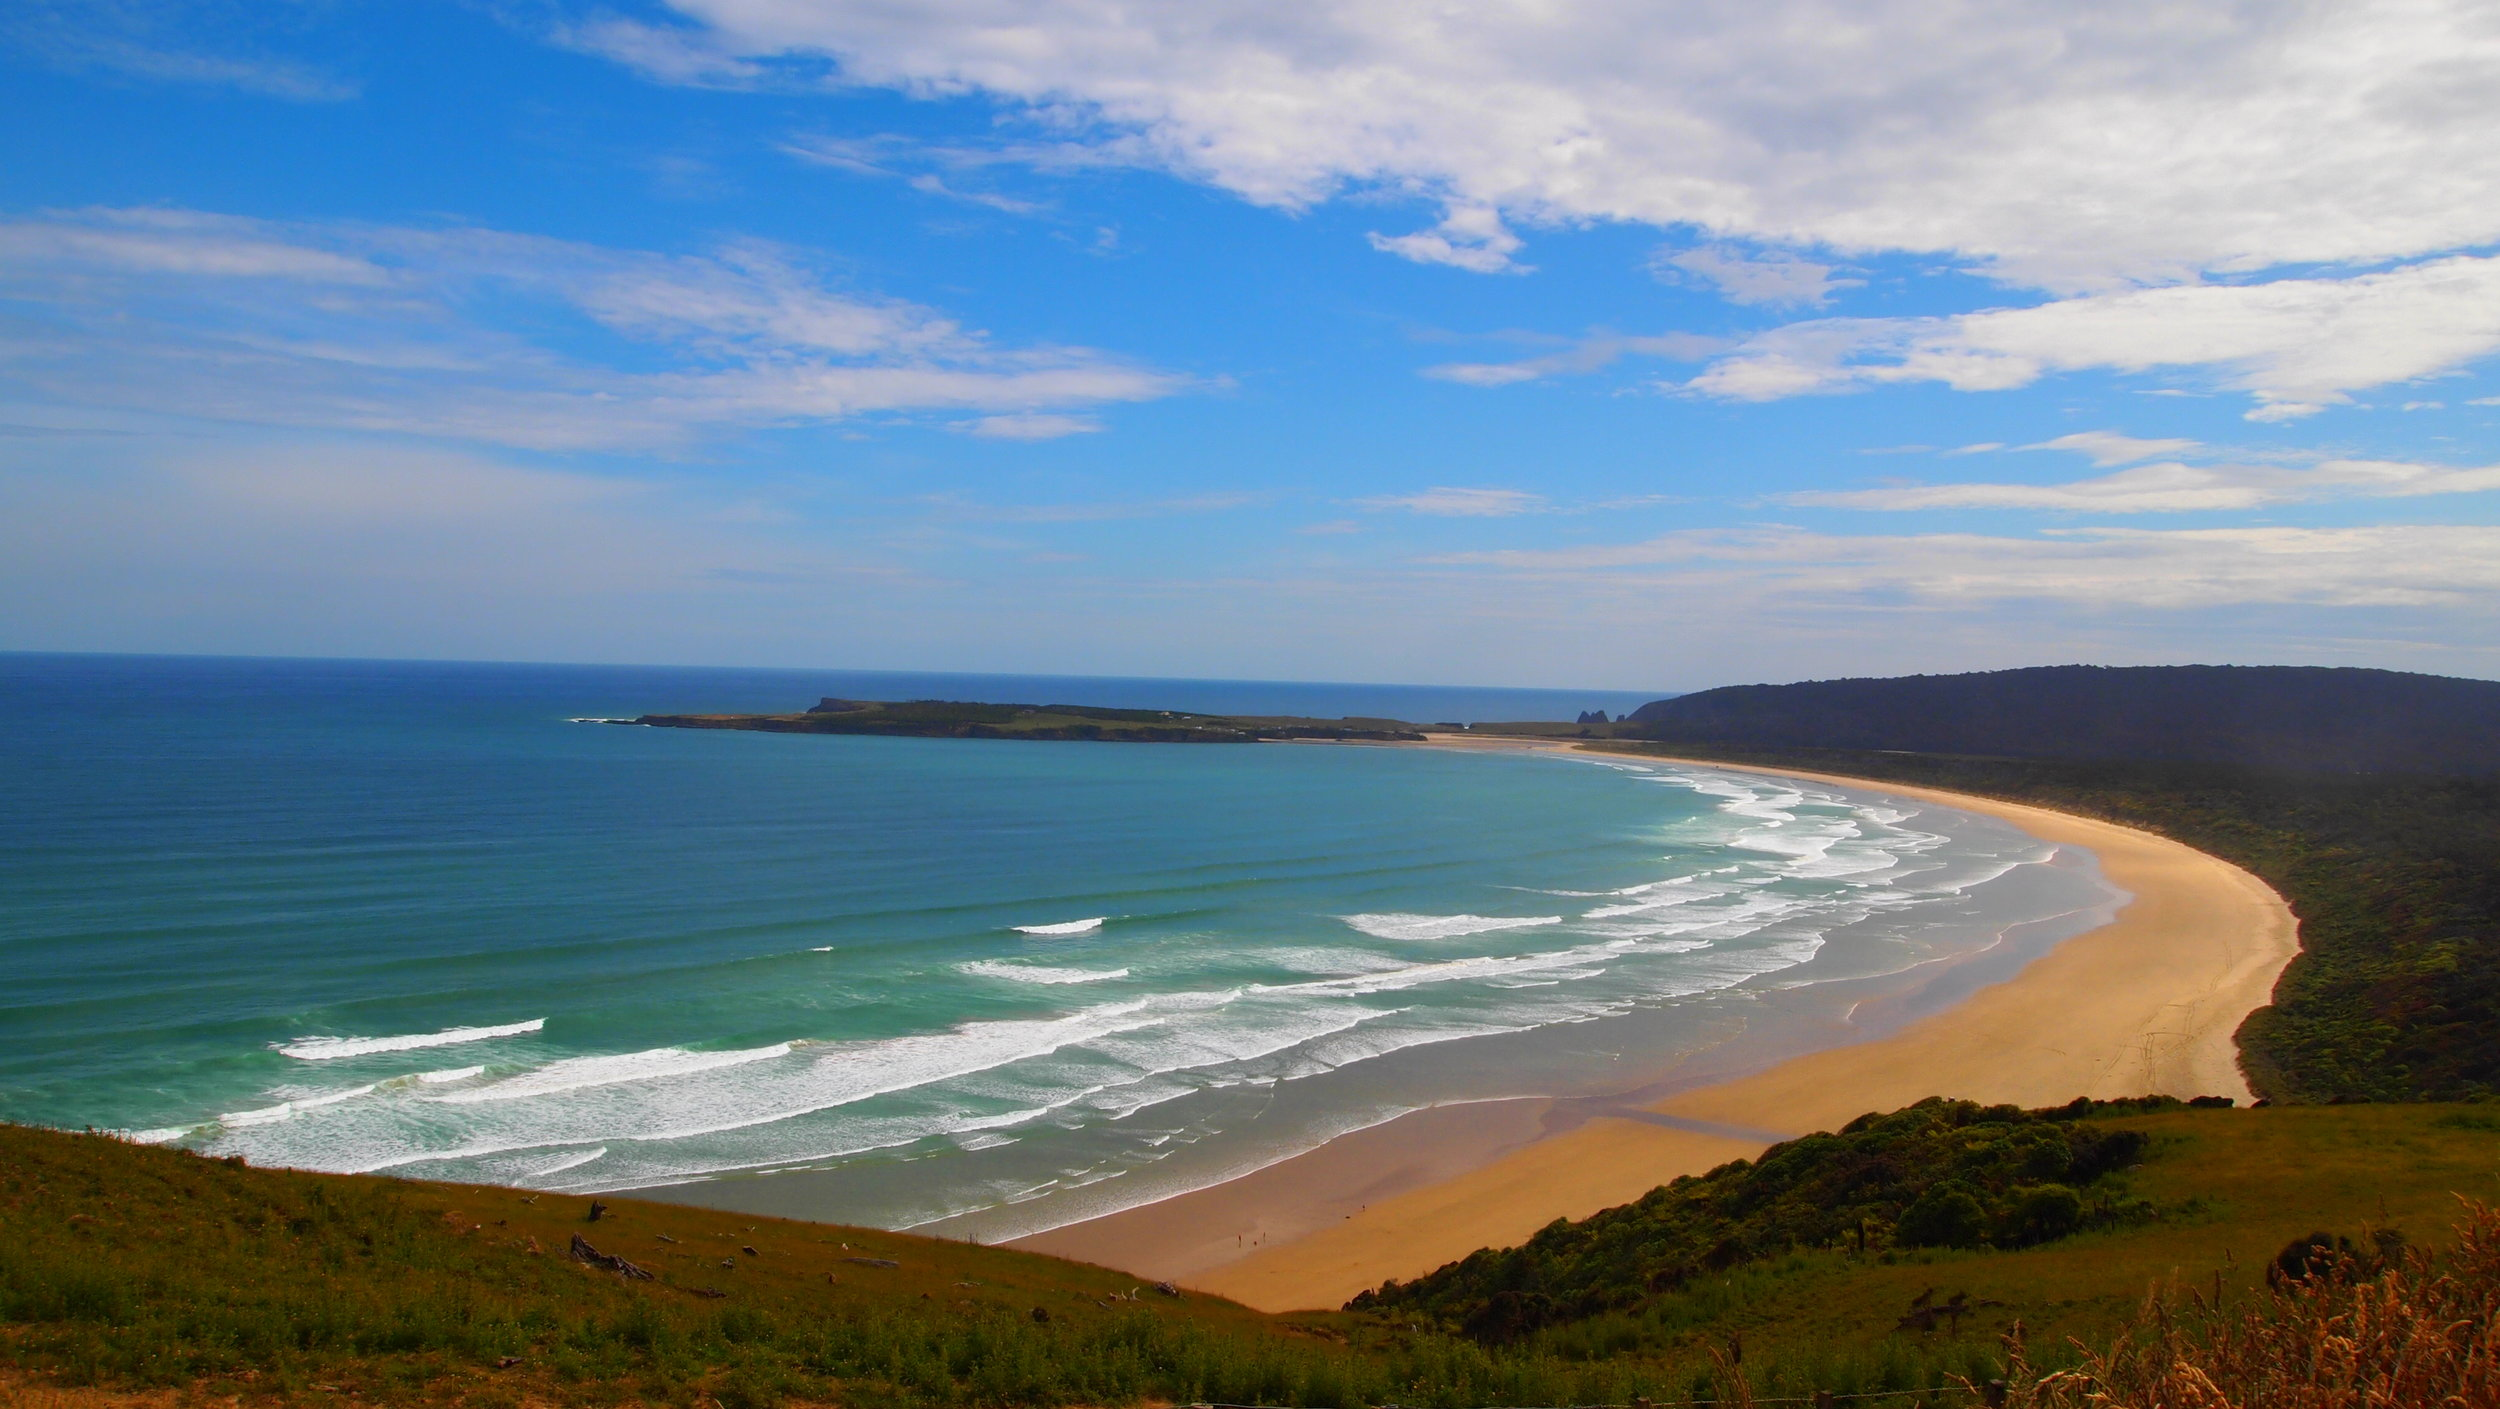 Coastal drive to The Catlins, New Zealand (image by Jacqui Gibson).